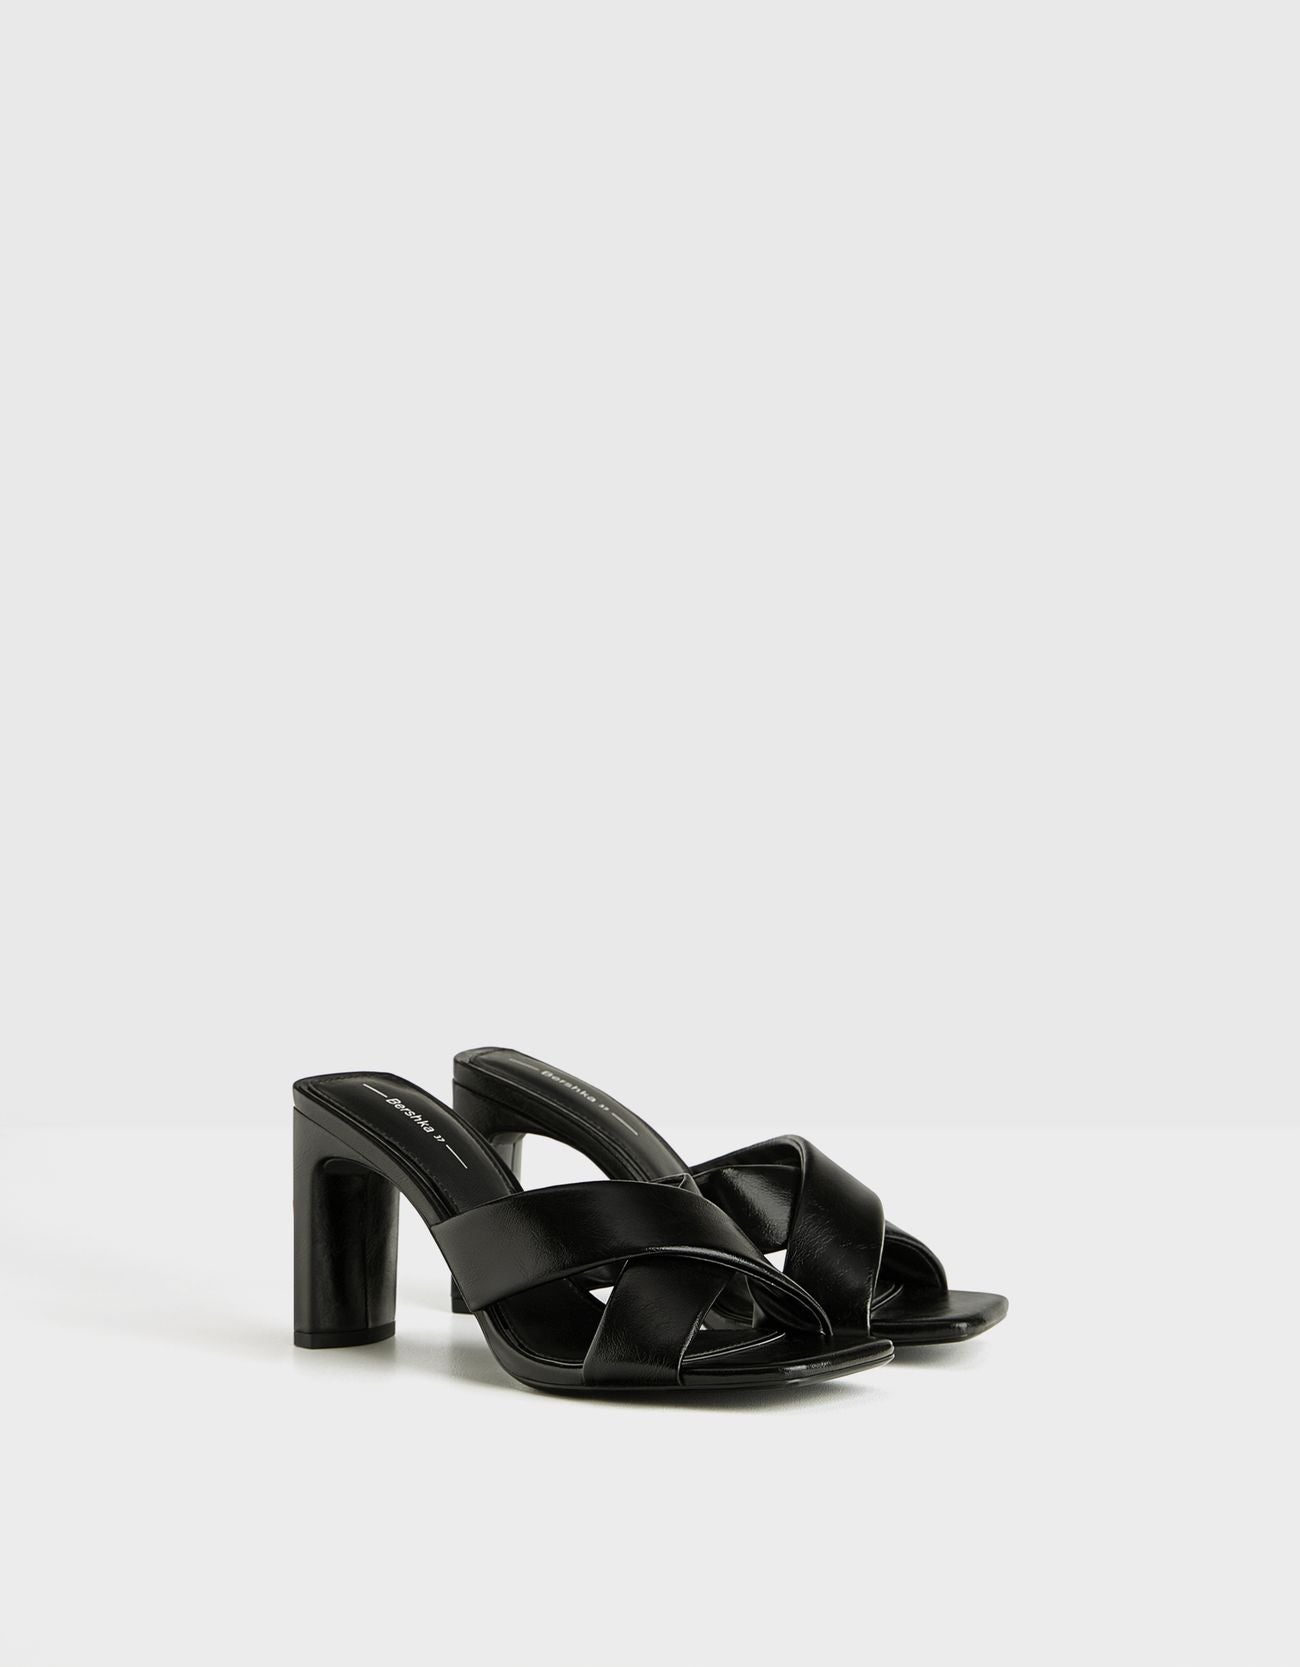 BERSHKA BLACK  HEELED MULE WITH CROSSOVER STRAPS